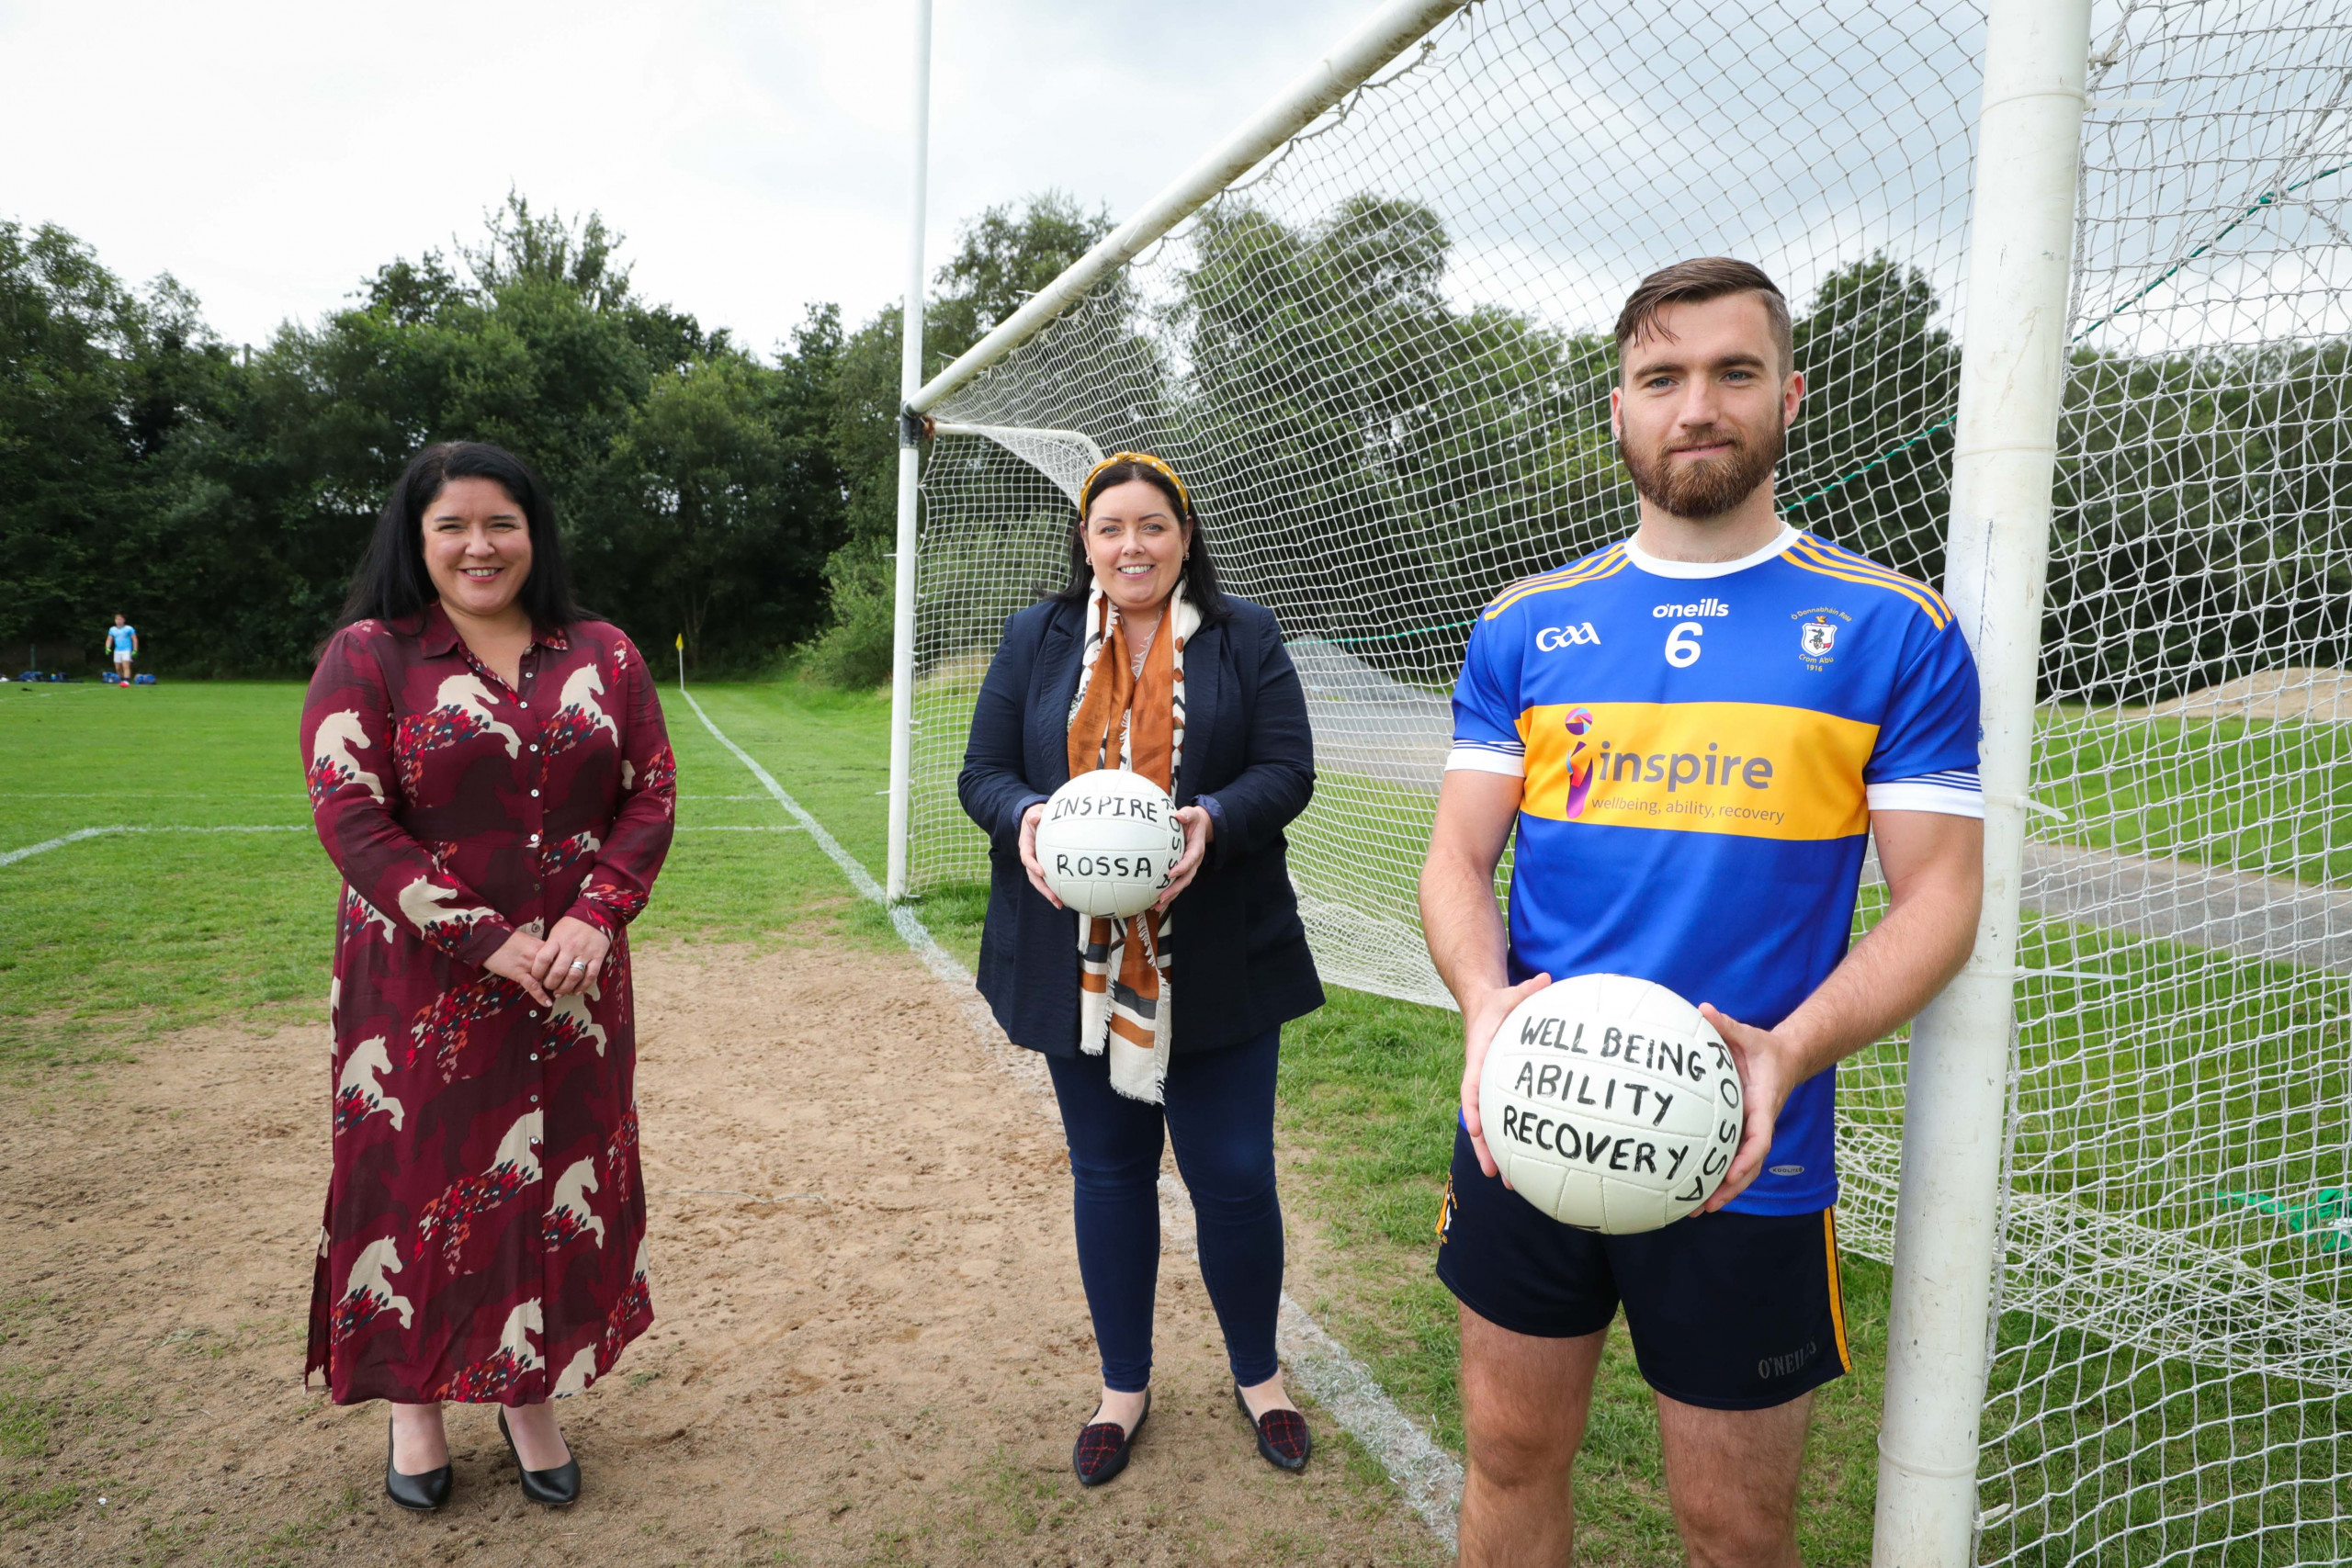 O'Donovan Rossa looks to Inspire 'Healthy Minds' with new mental health programme